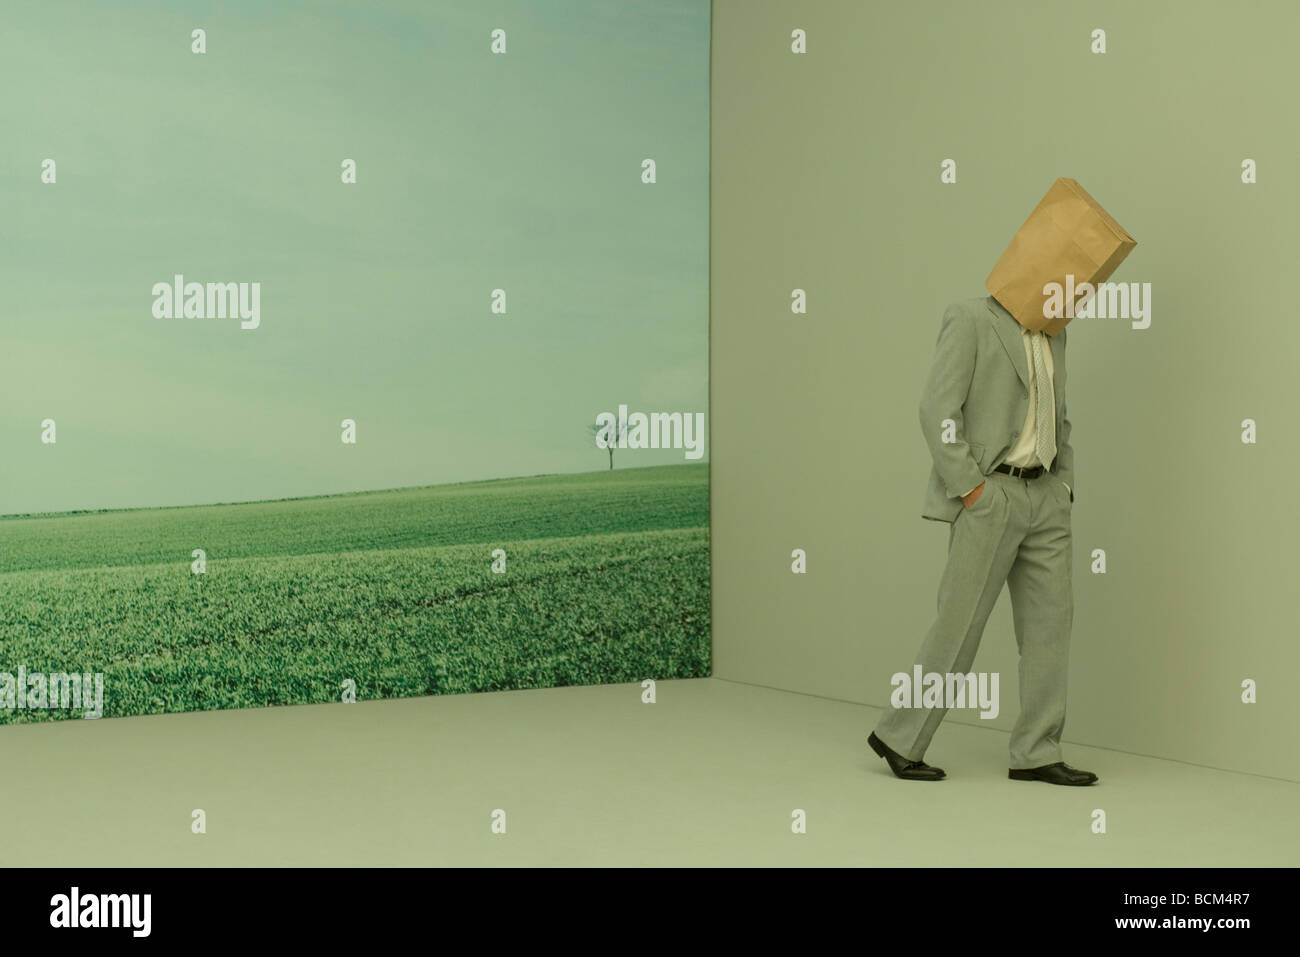 Man wearing paper bag over head, walking away from rural landscape, hands in pockets - Stock Image